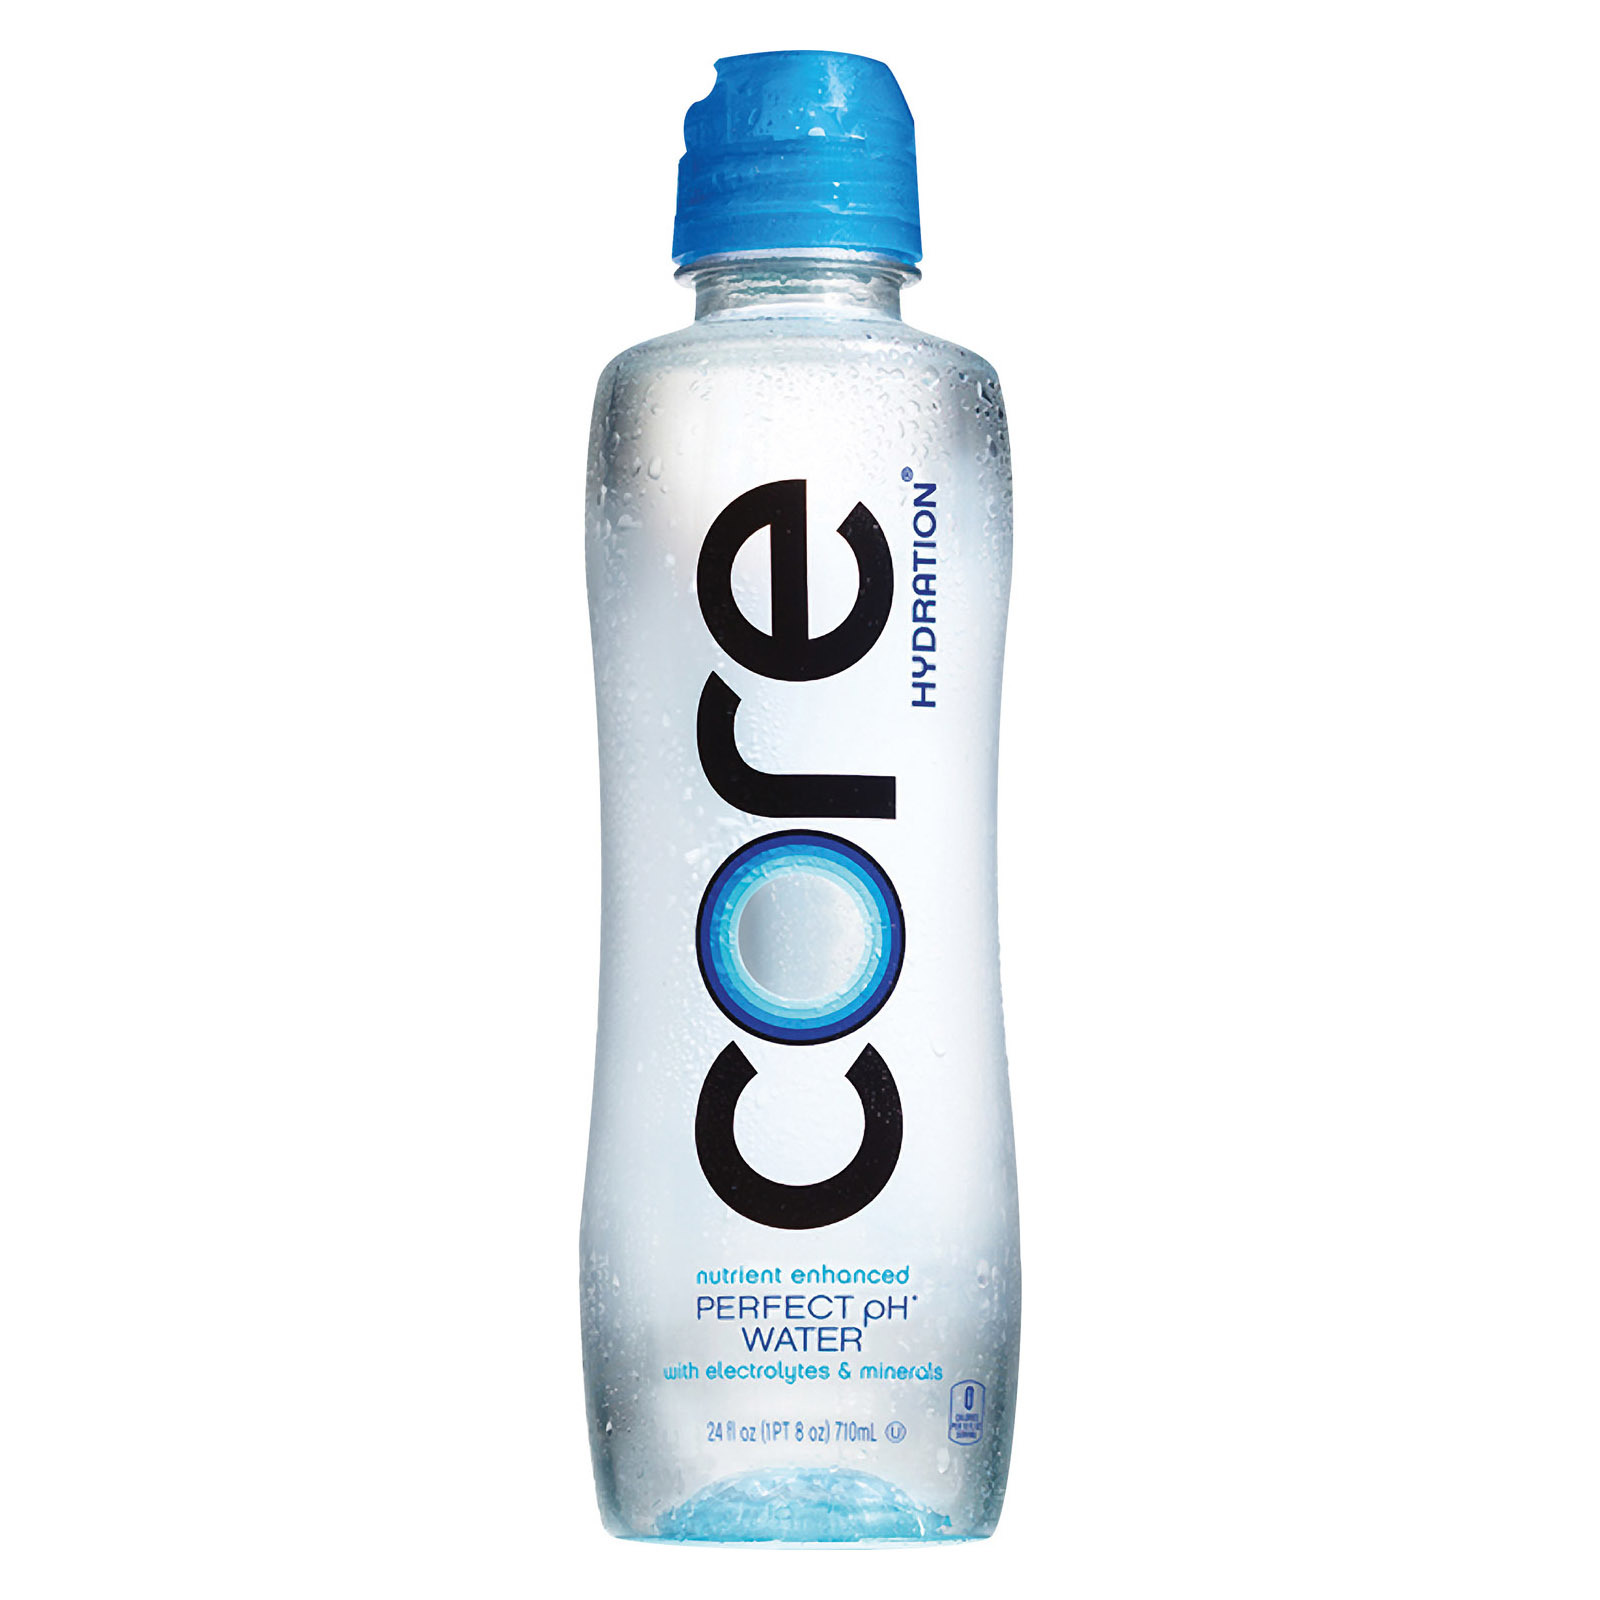 Core Natural Water - Perfect Ph Sport Cap - Case of 24 - 23.9 fl oz